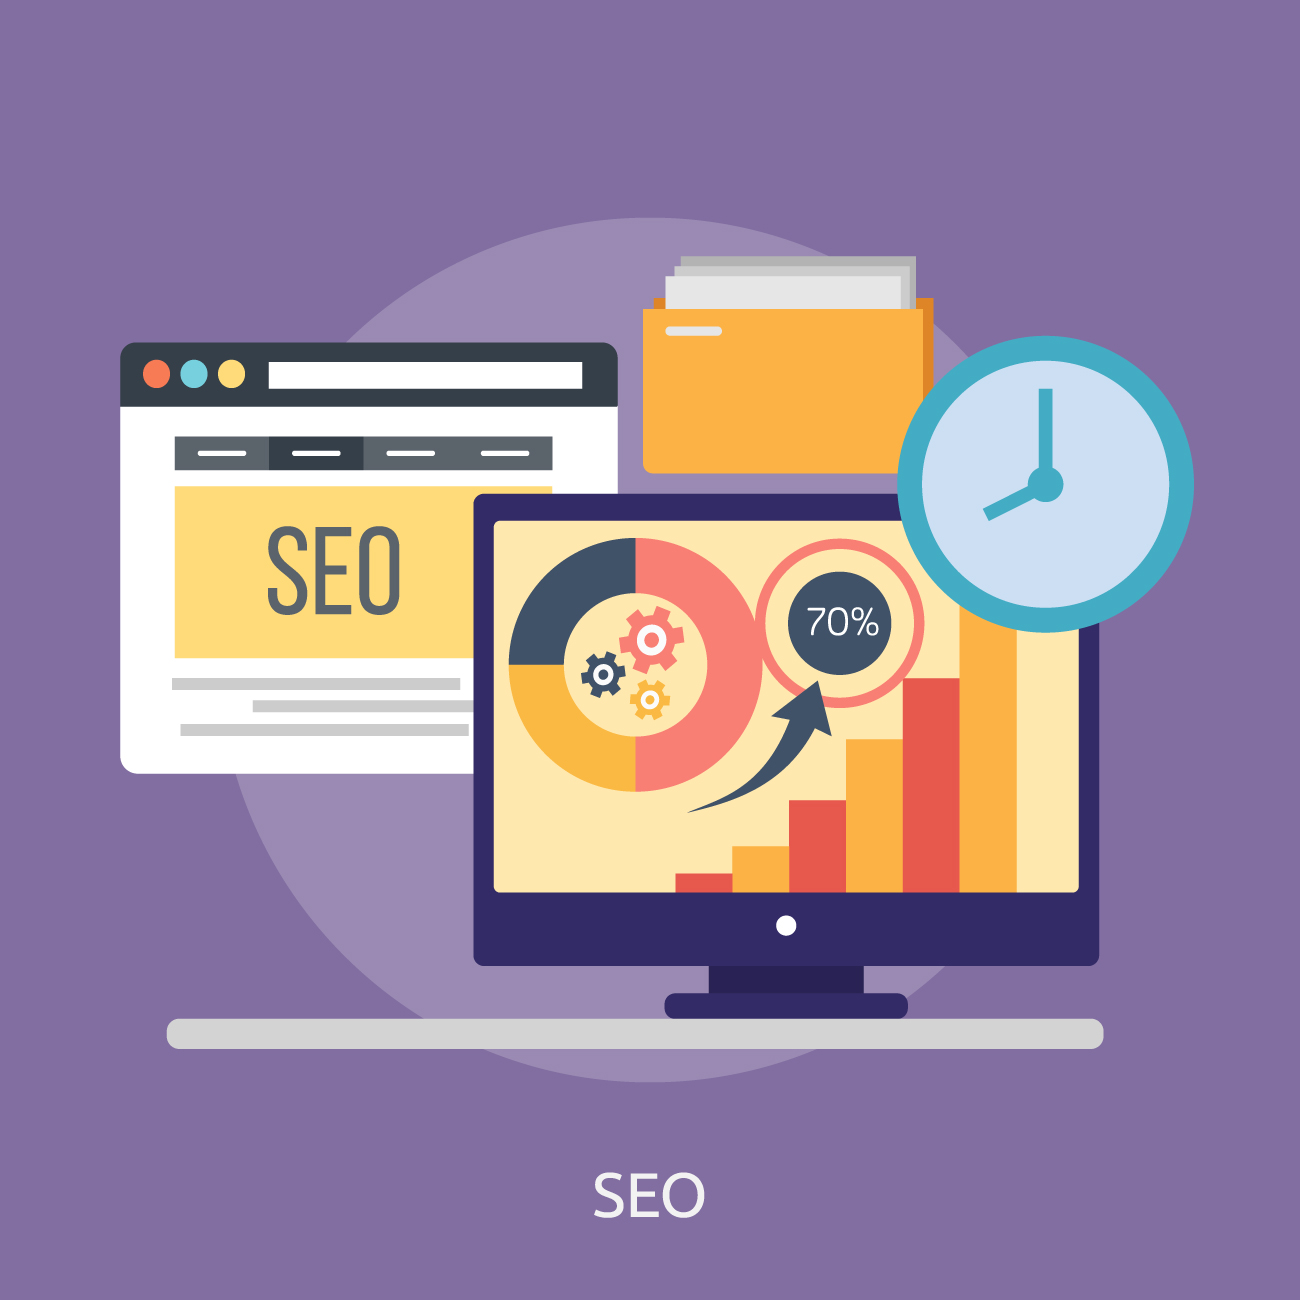 SEO for the website